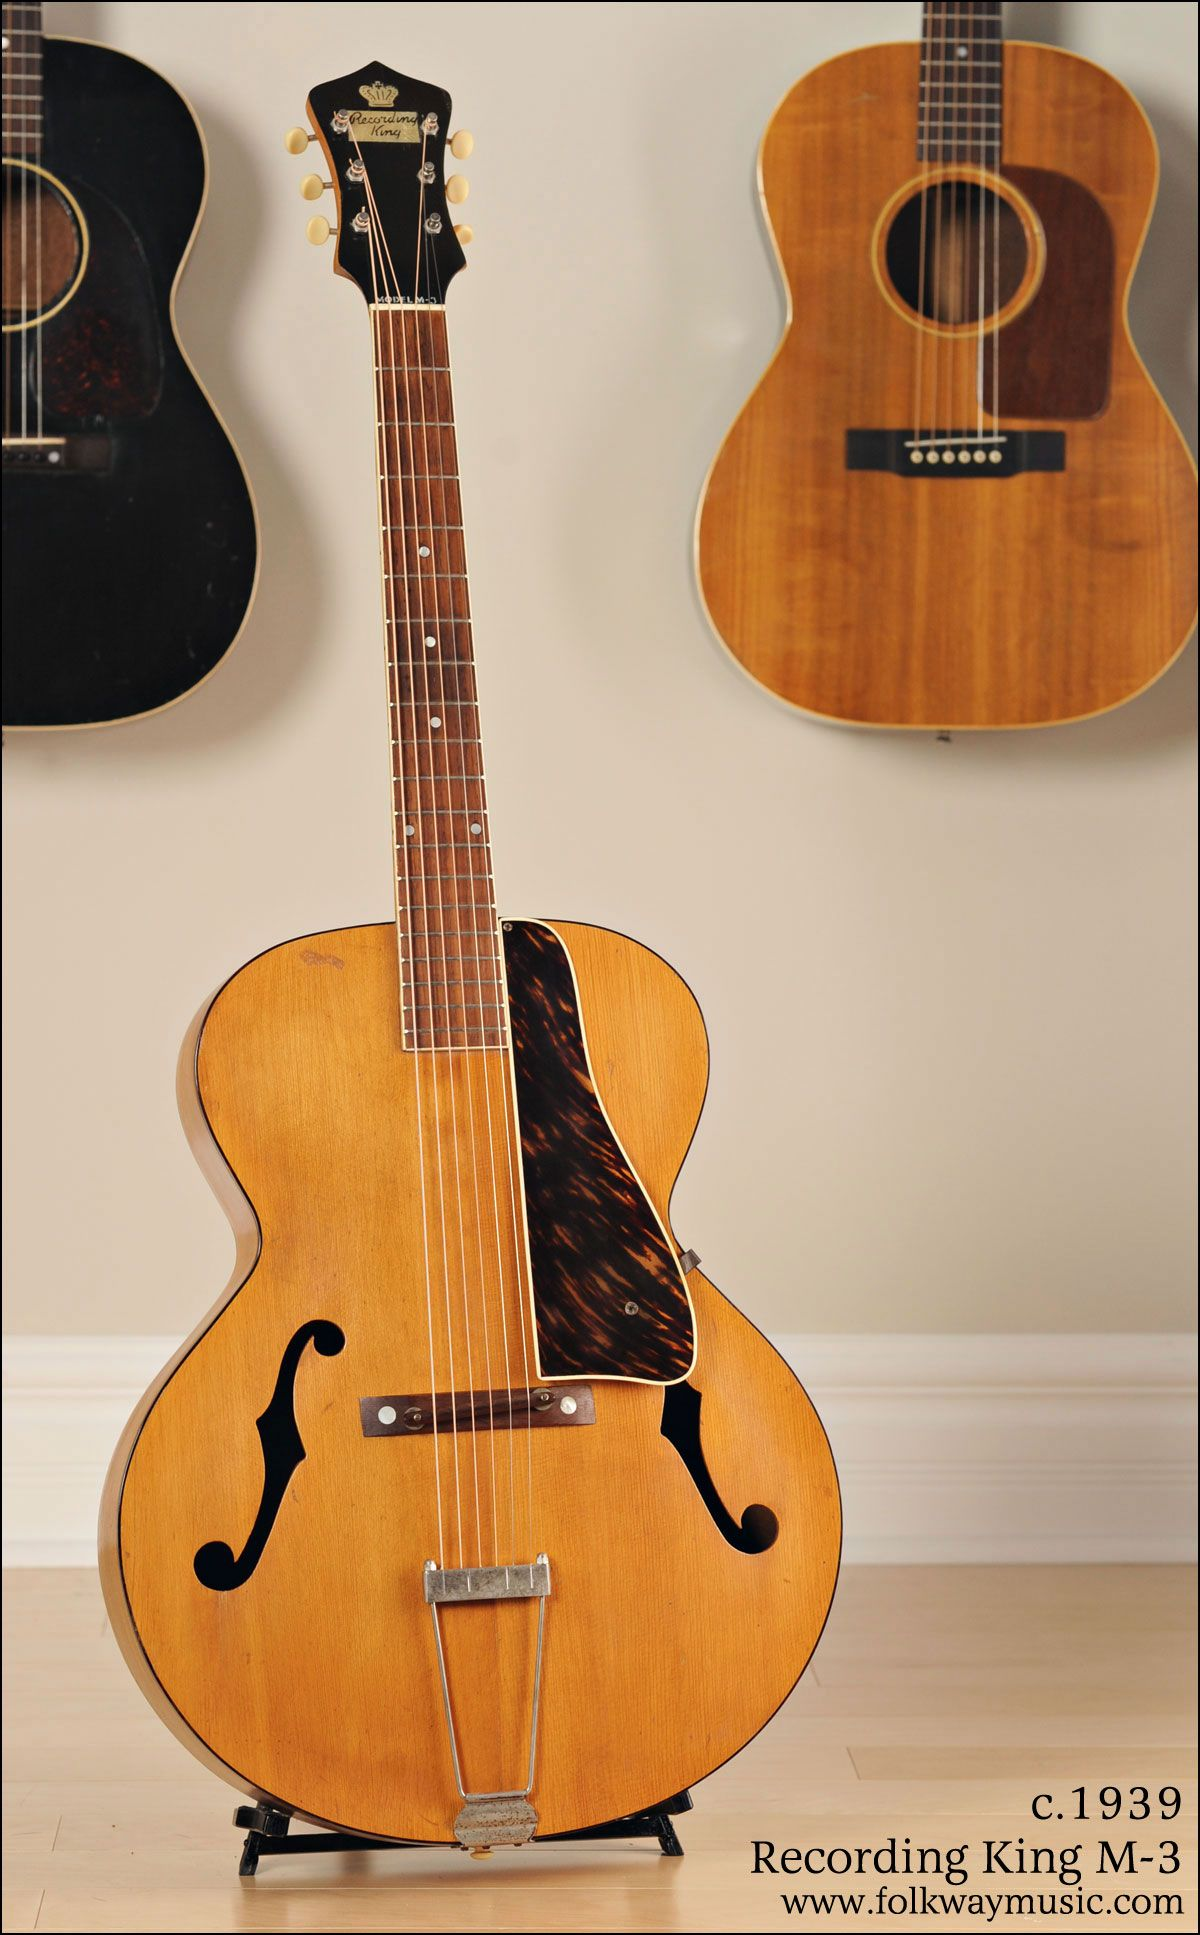 C 1939 Recording King M 3 Archtop Guitar Archtop Guitar Guitar Recording King